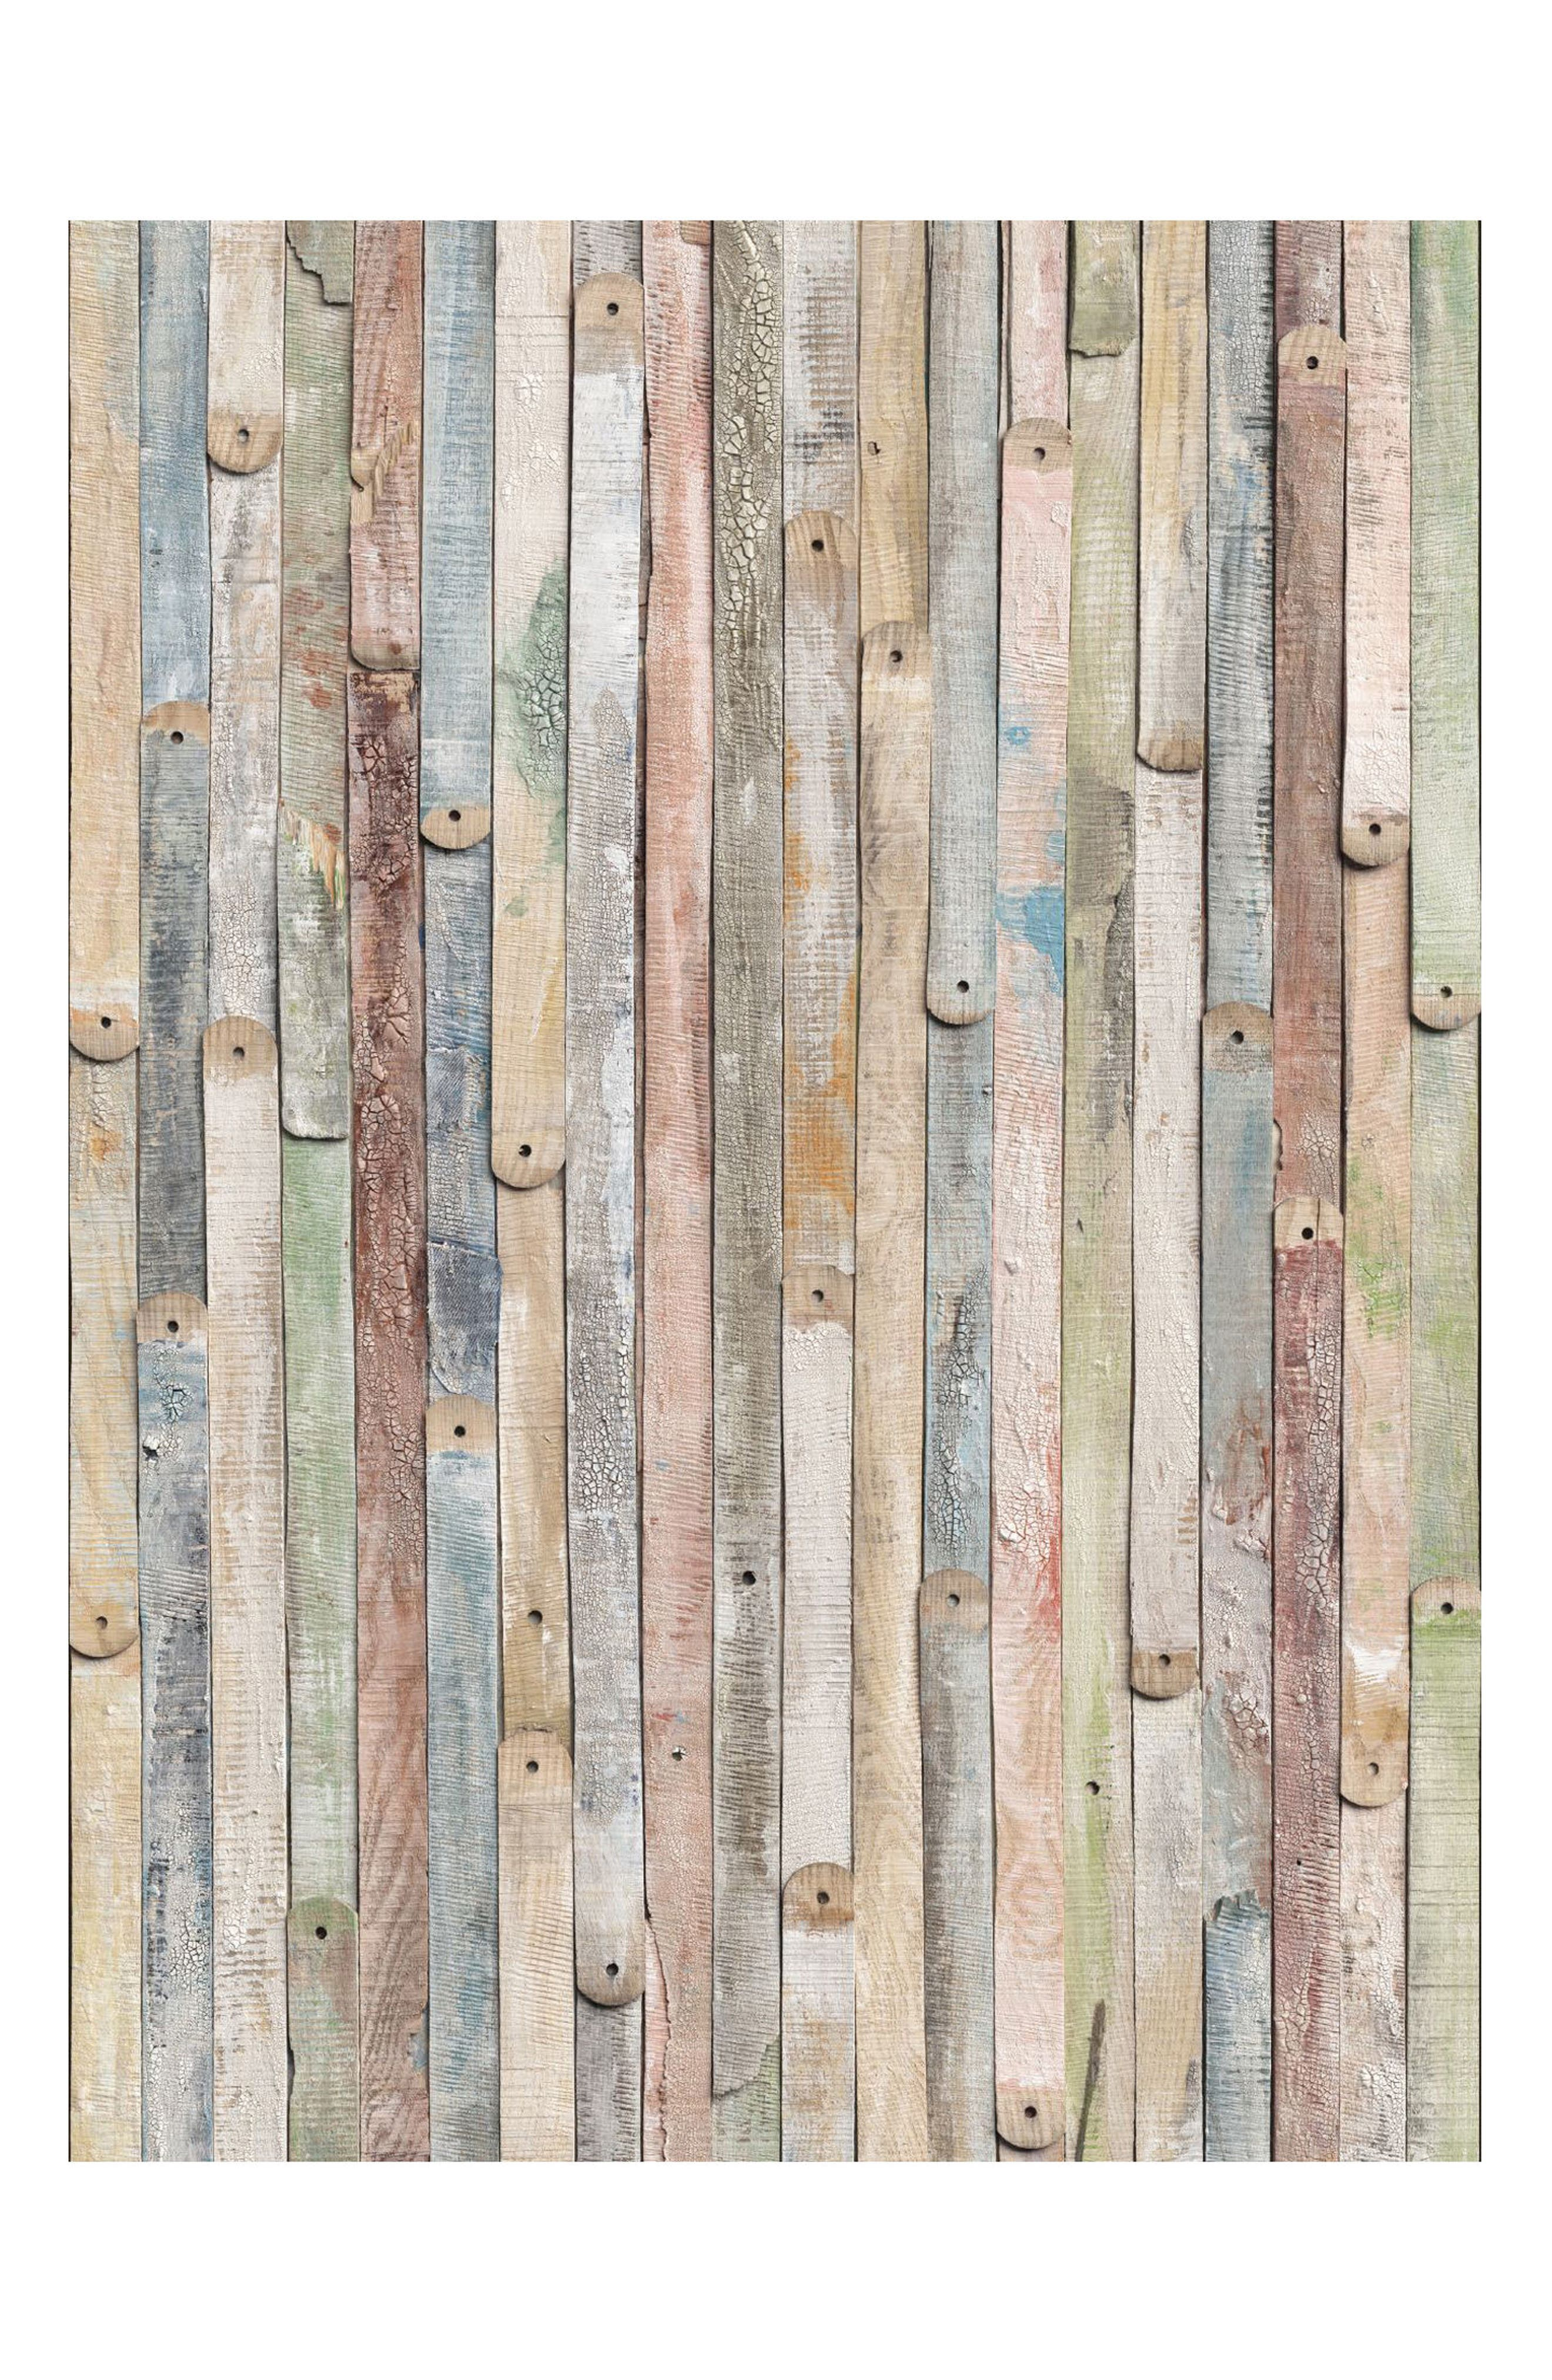 Vintage Wood Wall Mural,                         Main,                         color, Neutral